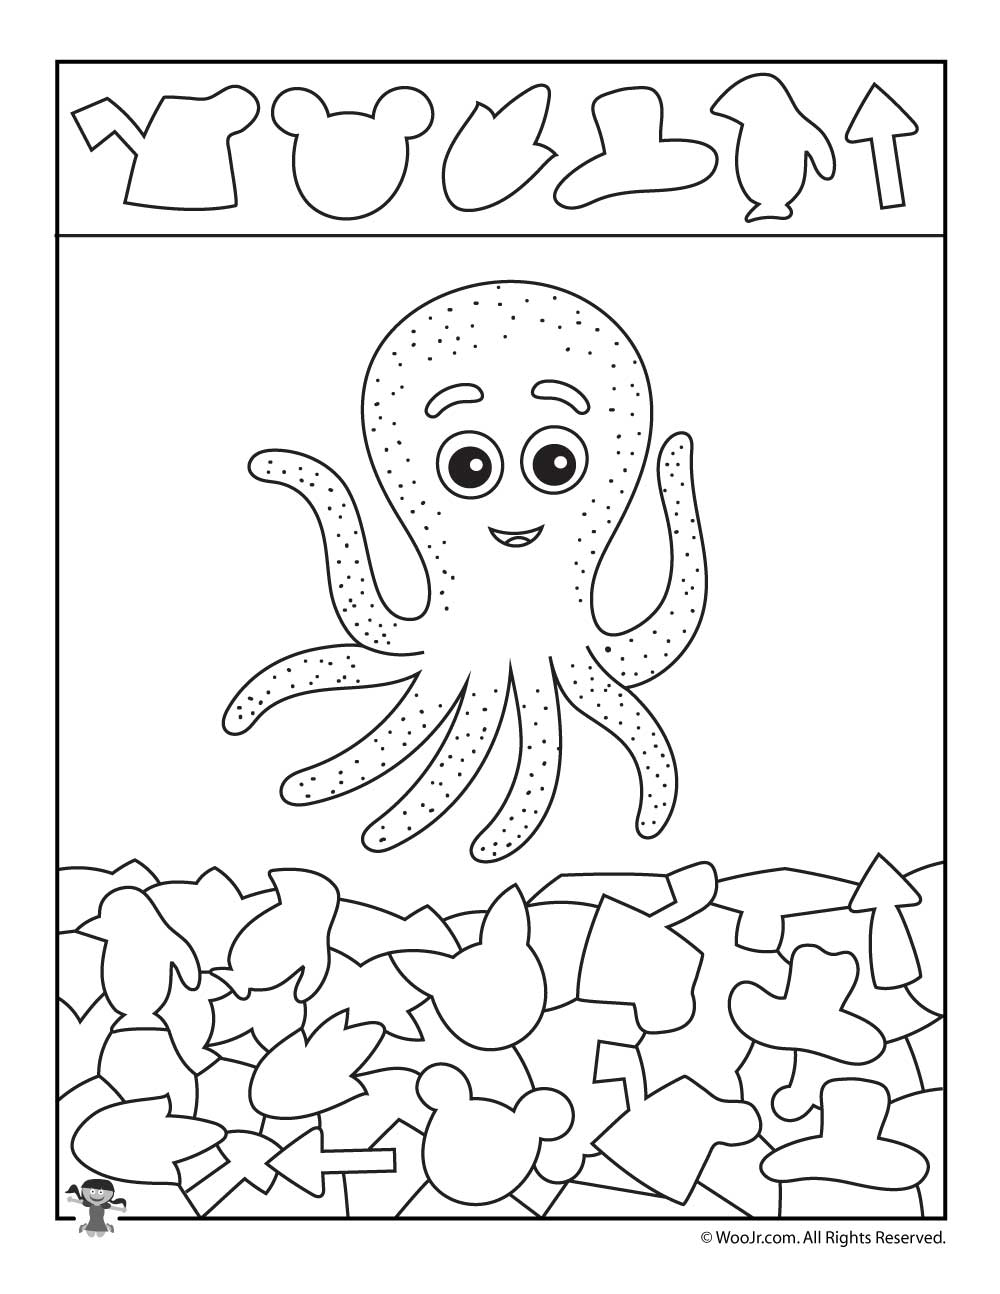 Octopus Hidden Shapes Printable